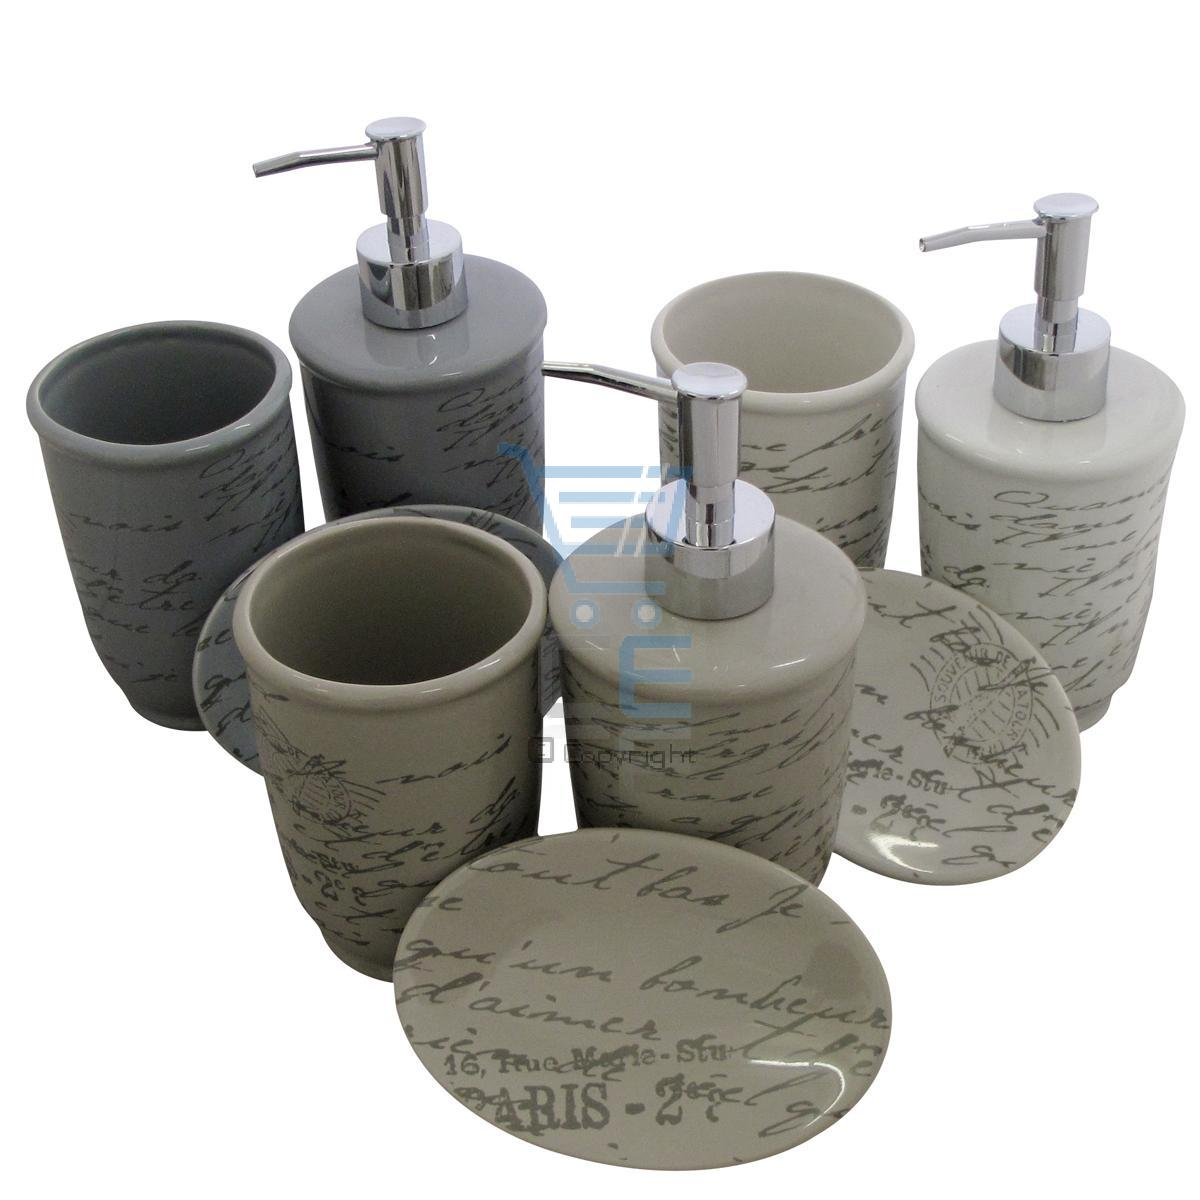 3pc ceramic bathroom set 3 colours beige grey white dispenser tumbler soap dish ebay - Bathroom soap dish sets ...